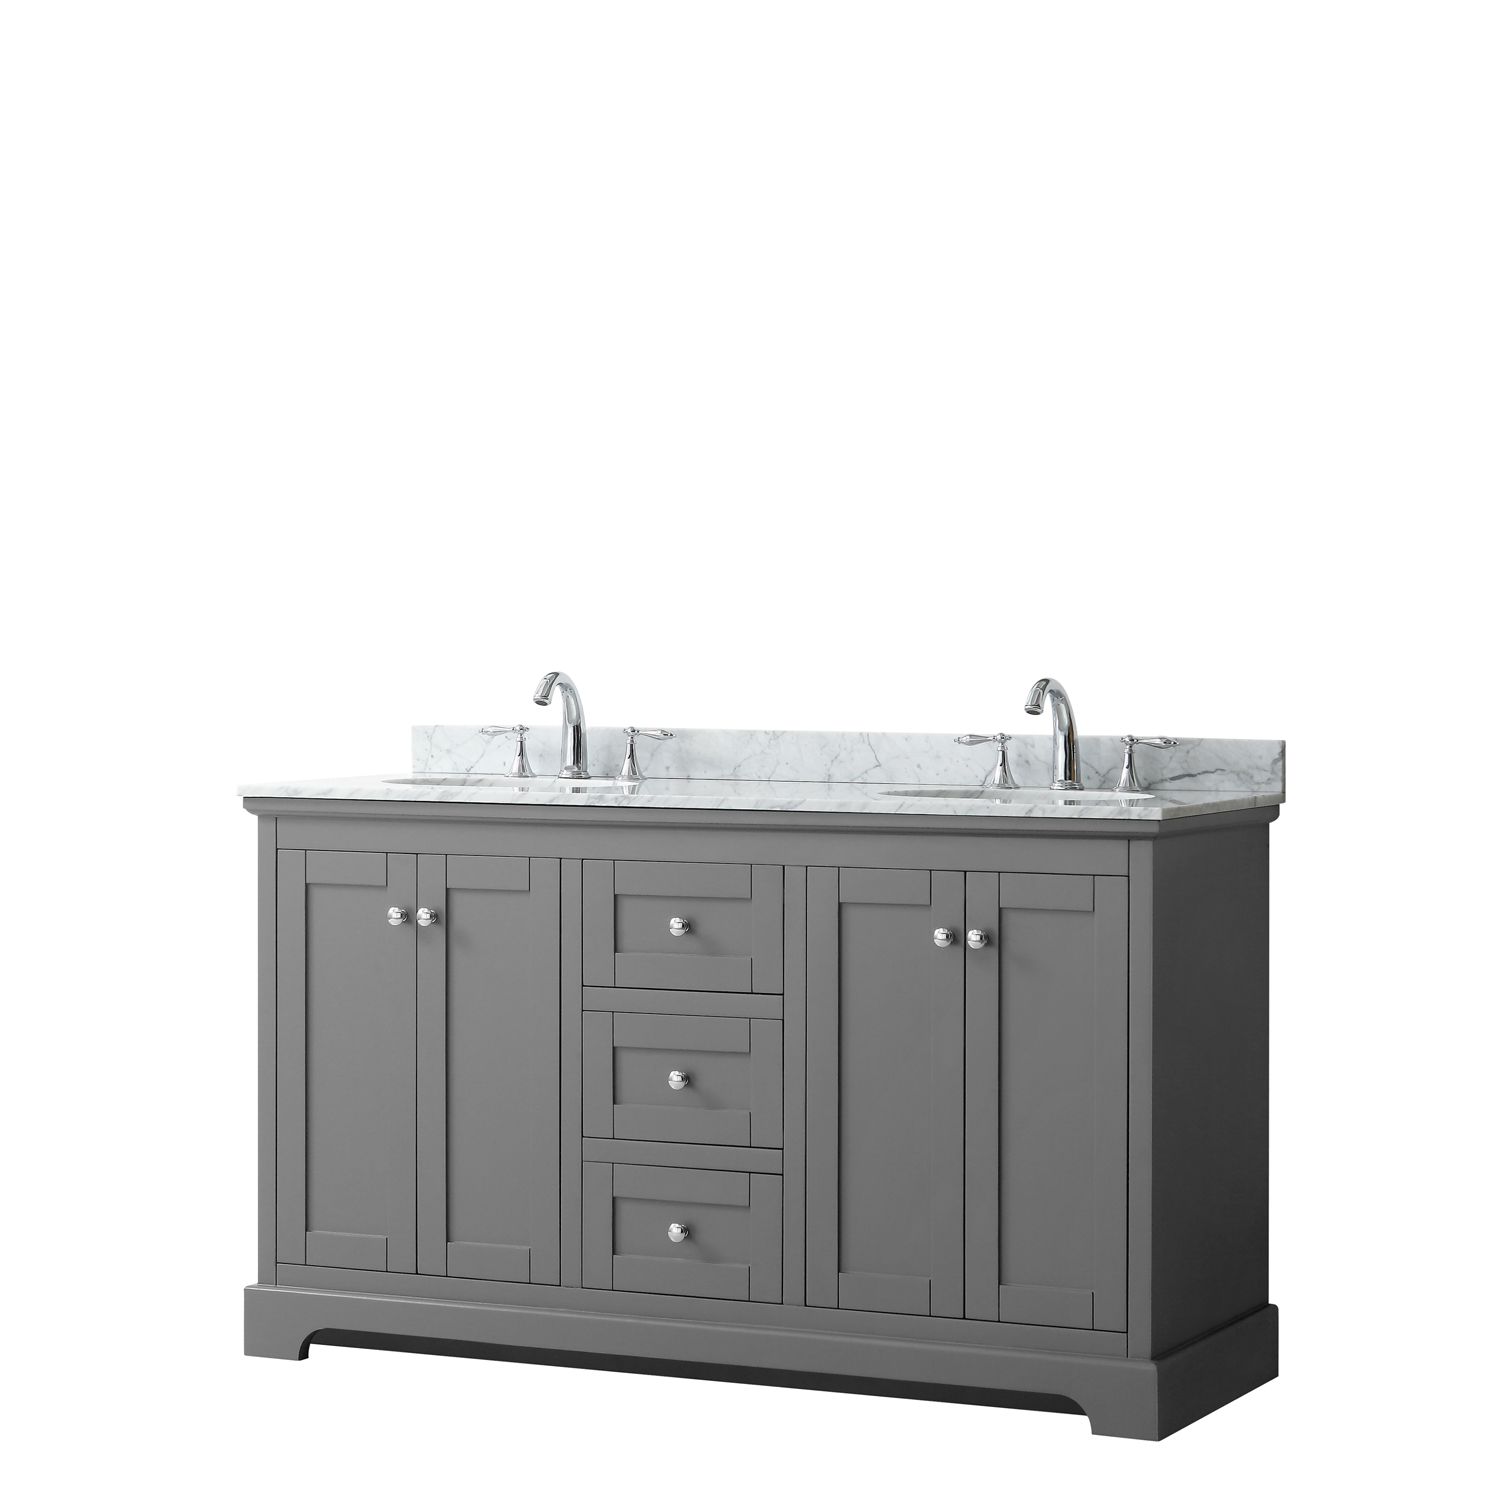 "60"" Double Bathroom Vanity in Dark Gray, No Countertop, No Sinks, and No Mirror"